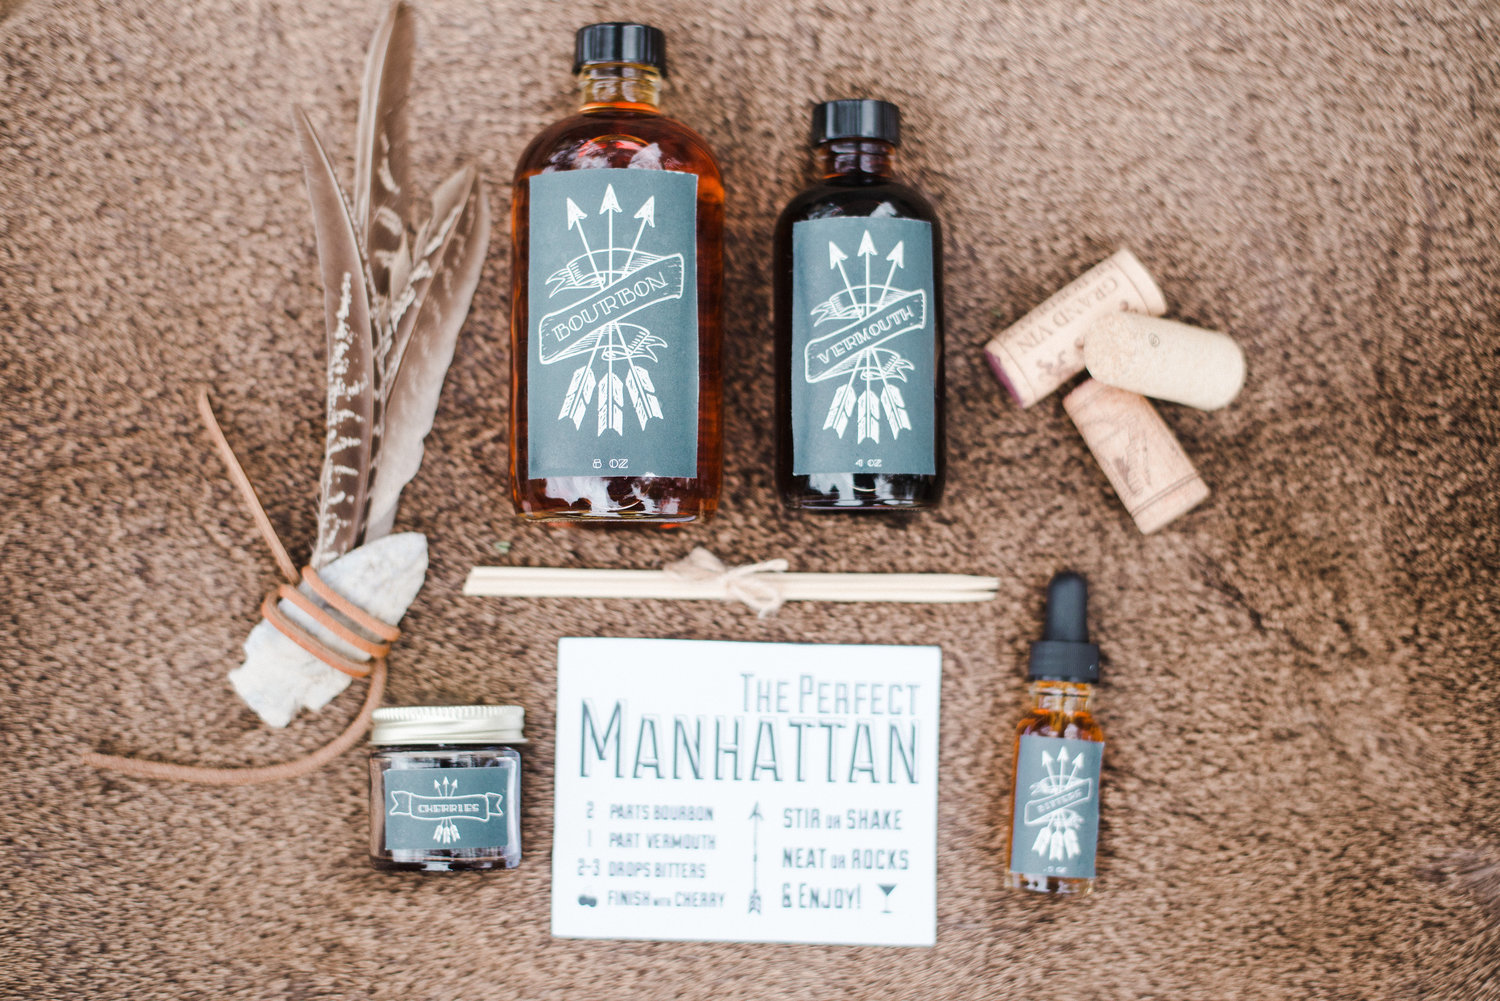 Manhattan+Kit-0010.jpg